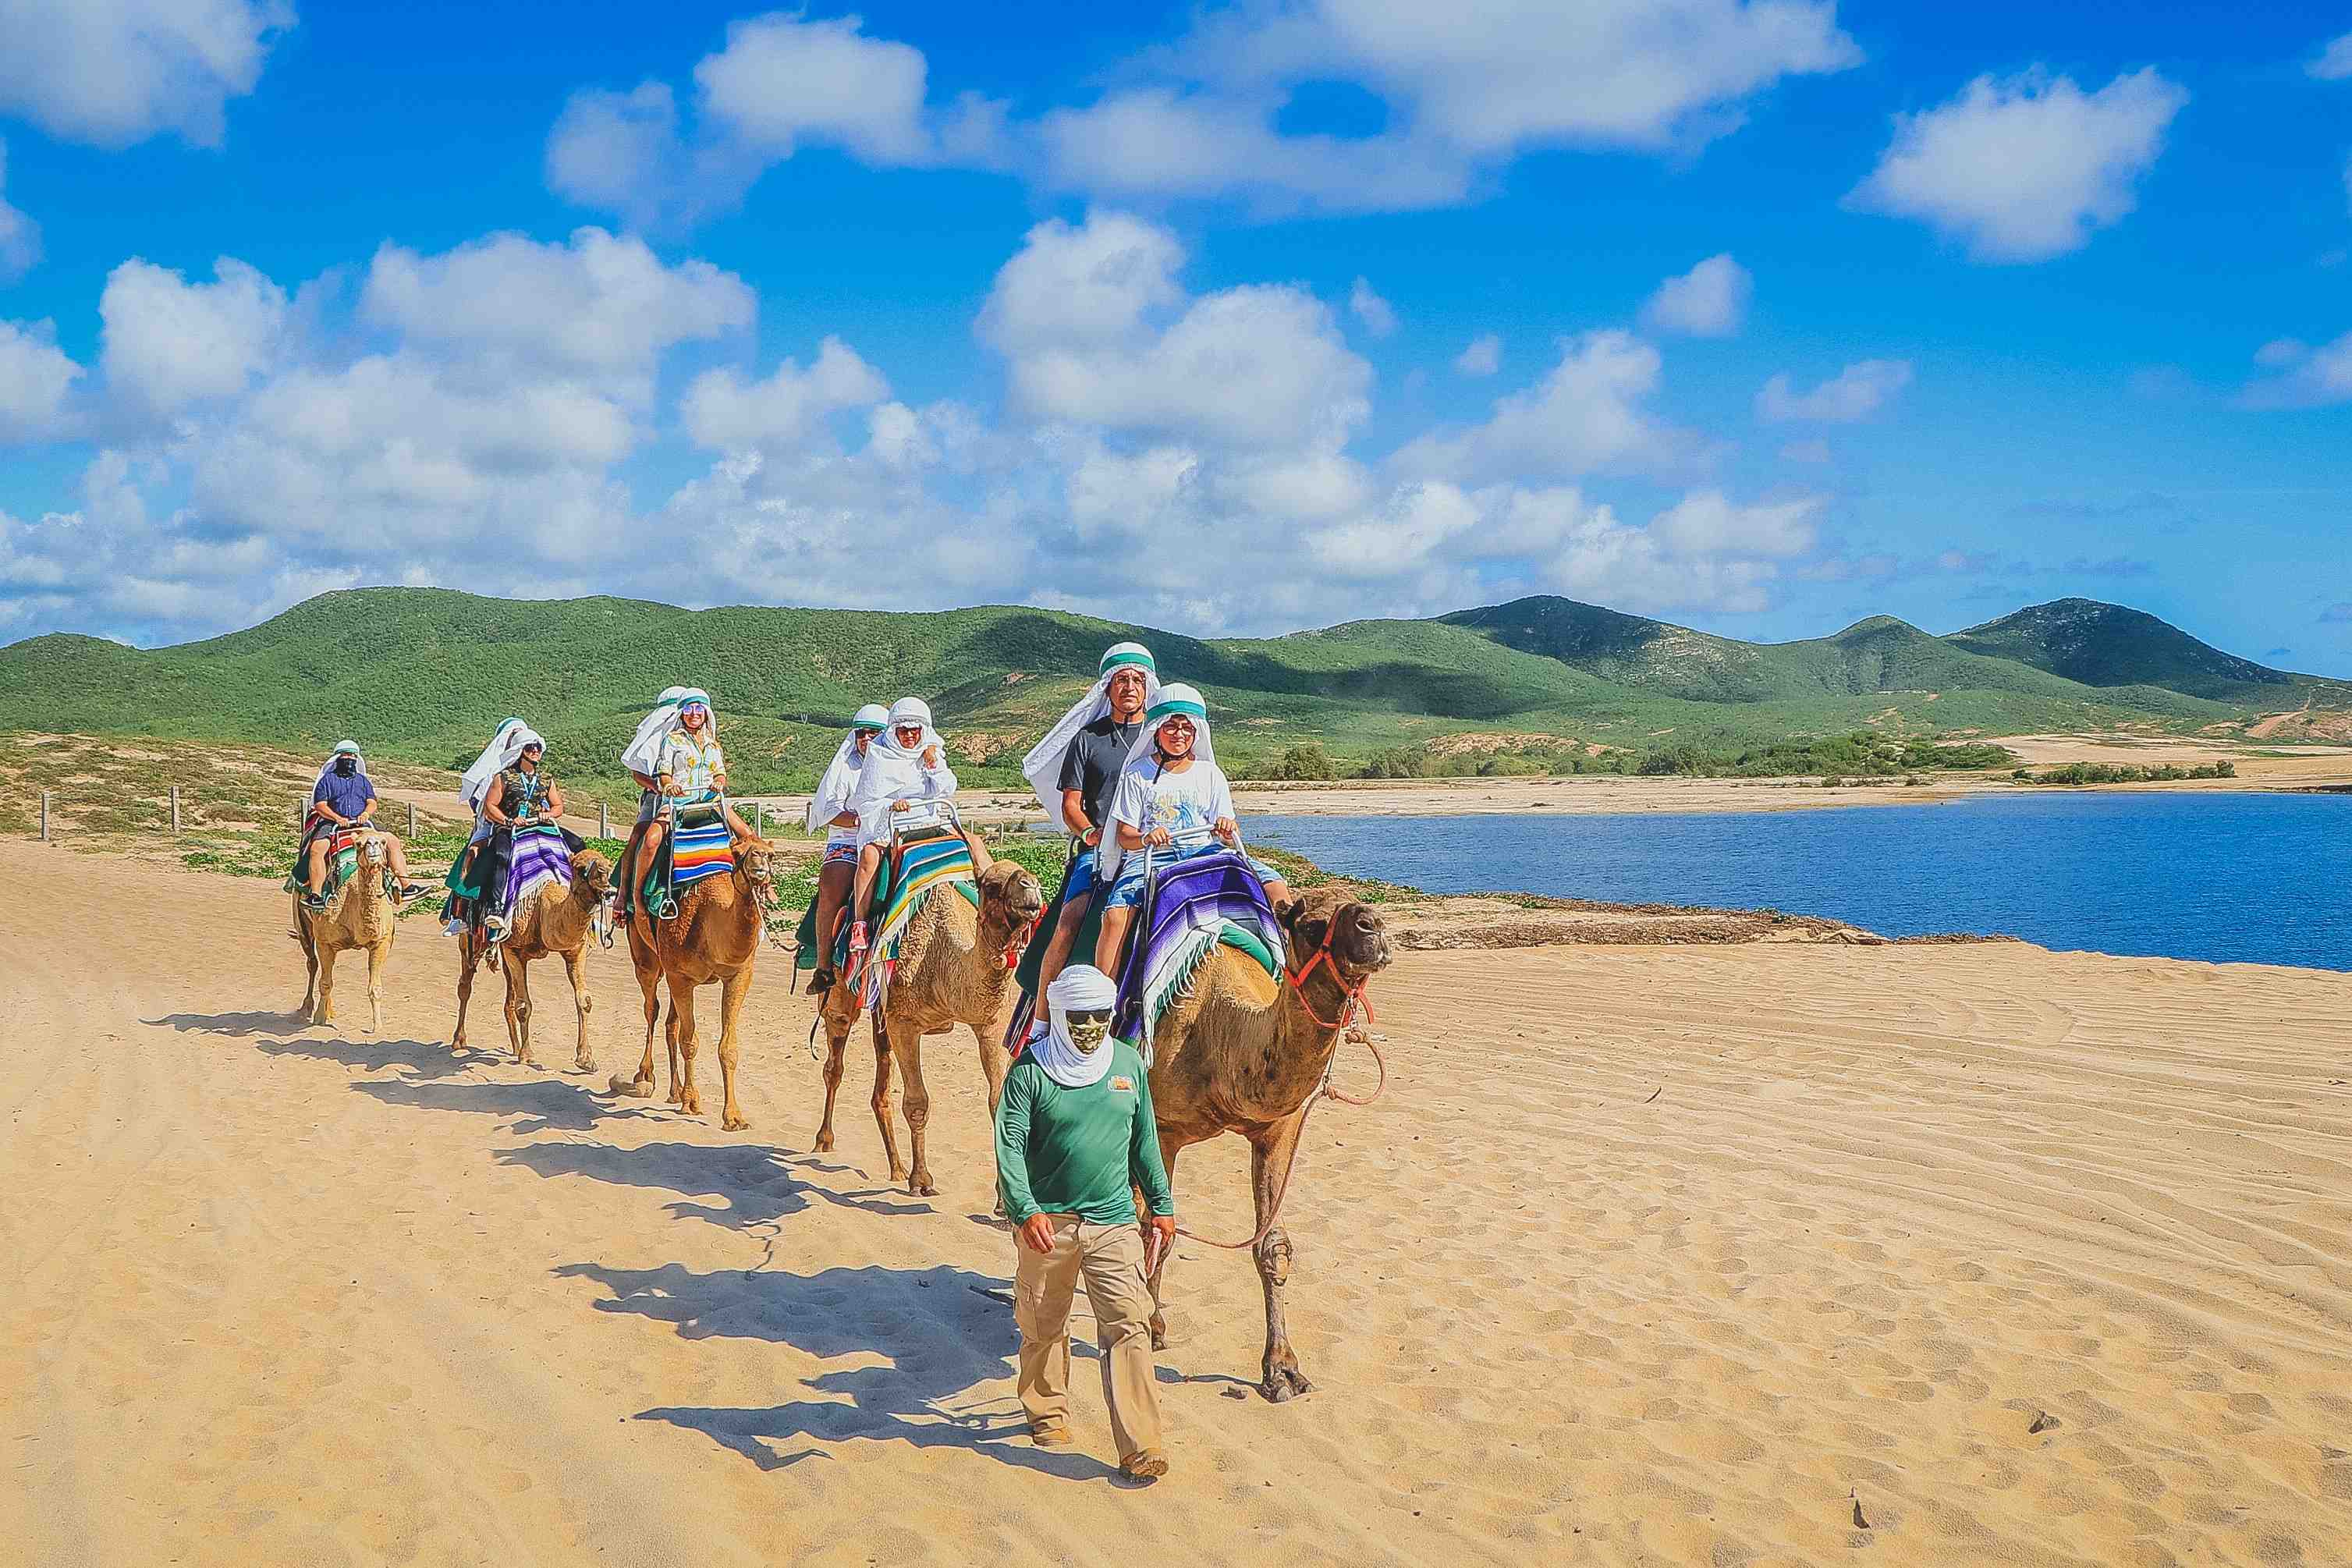 Camel Ride And Encounter - Last Minute Tours in Los Cabos